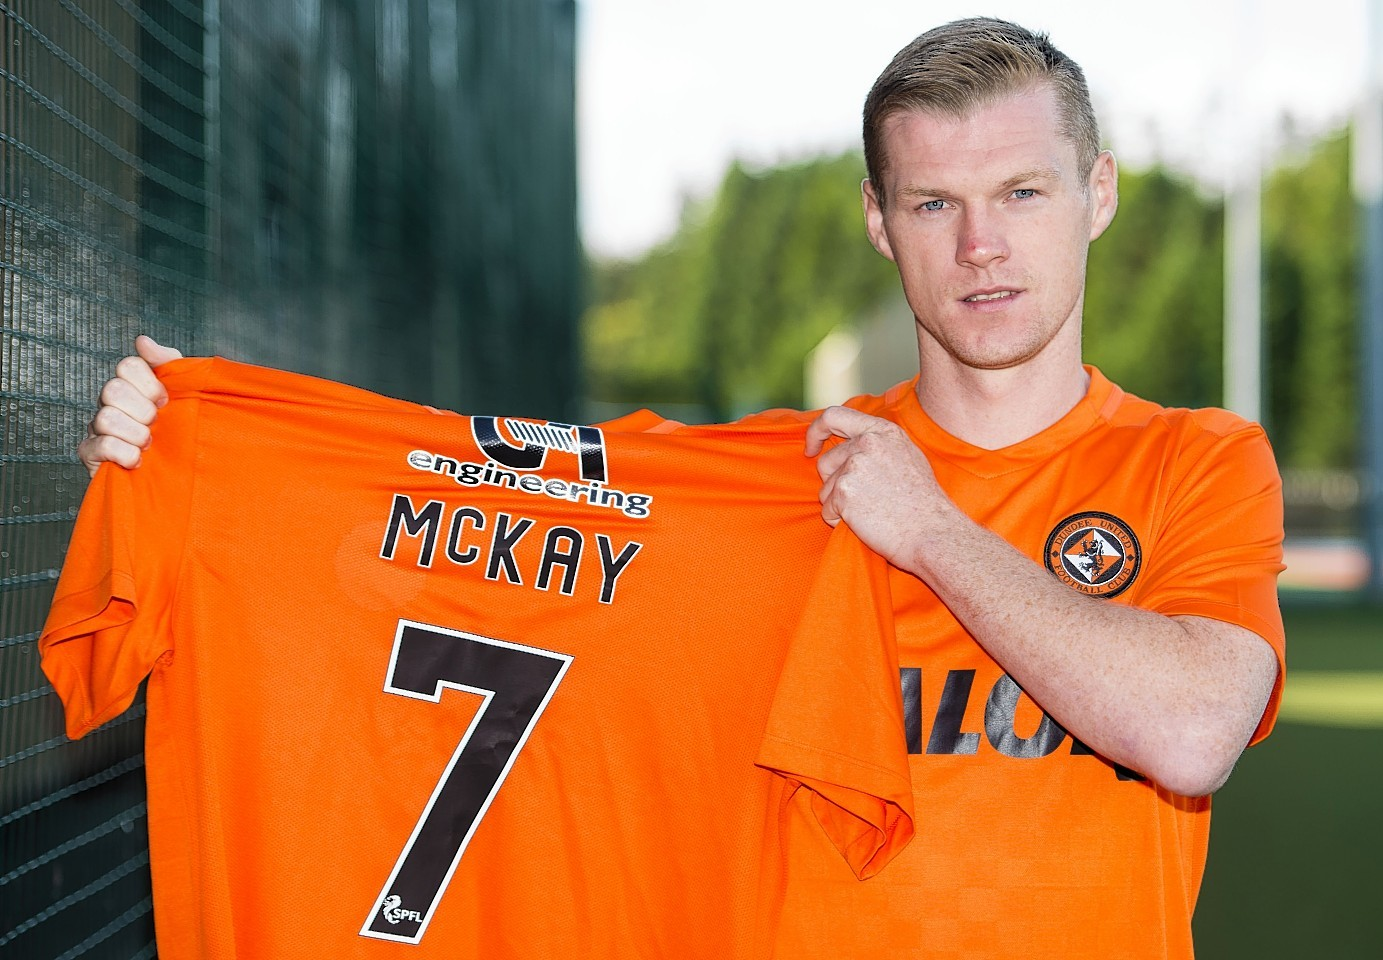 Dundee United signed Billy McKay at the end of the transfer window